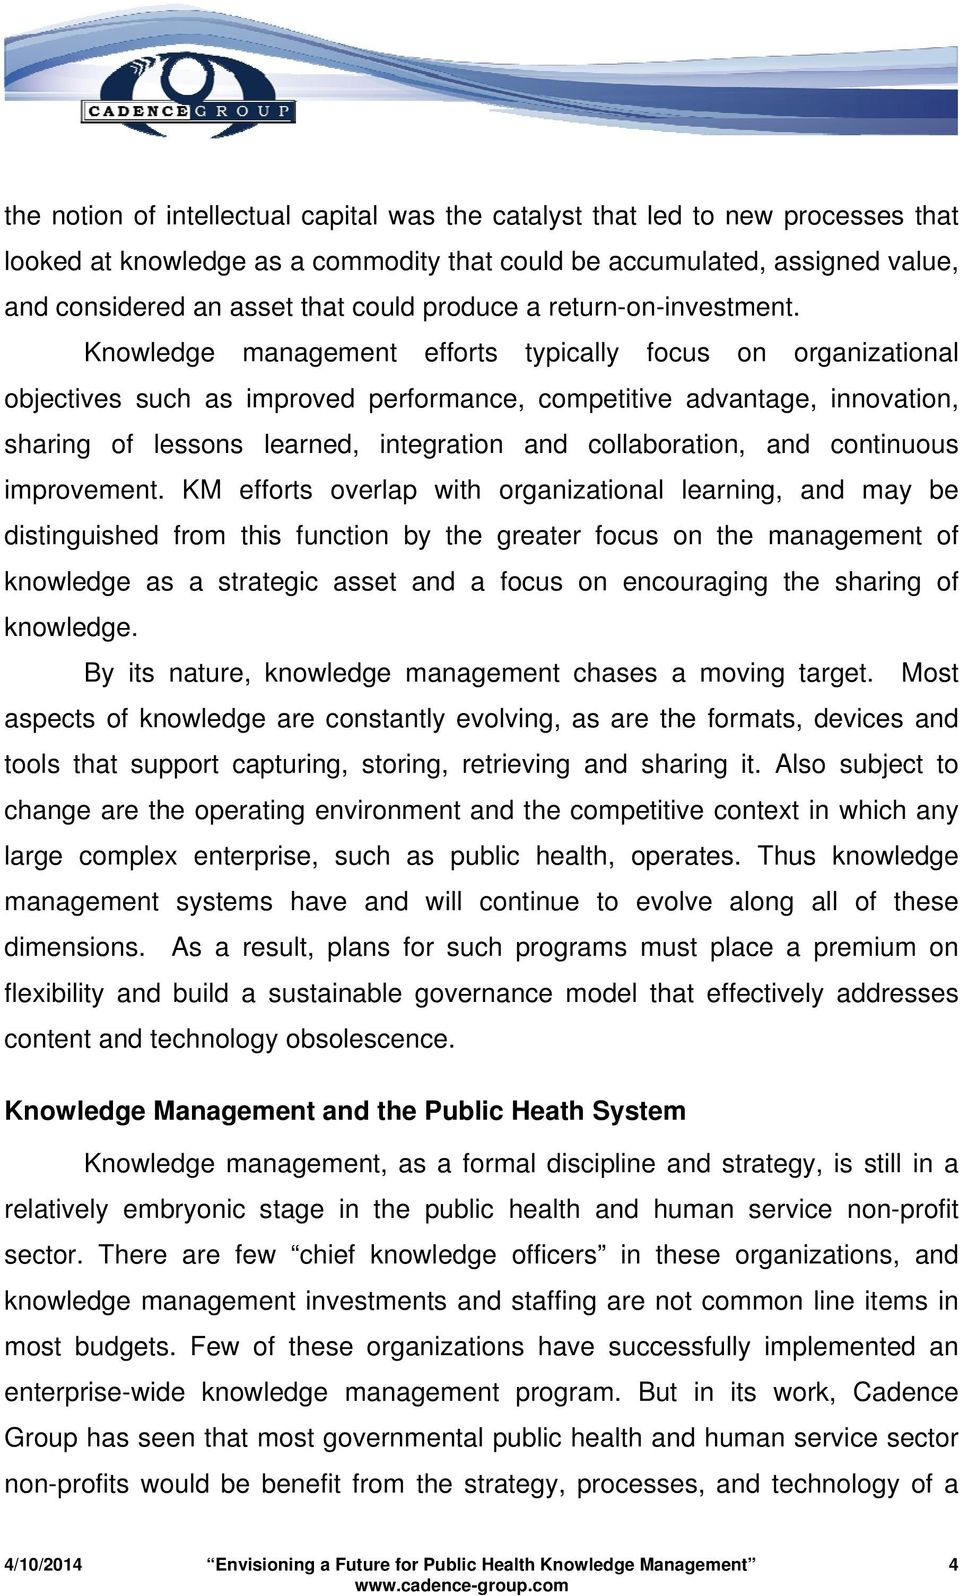 Knowledge management efforts typically focus on organizational objectives such as improved performance, competitive advantage, innovation, sharing of lessons learned, integration and collaboration,